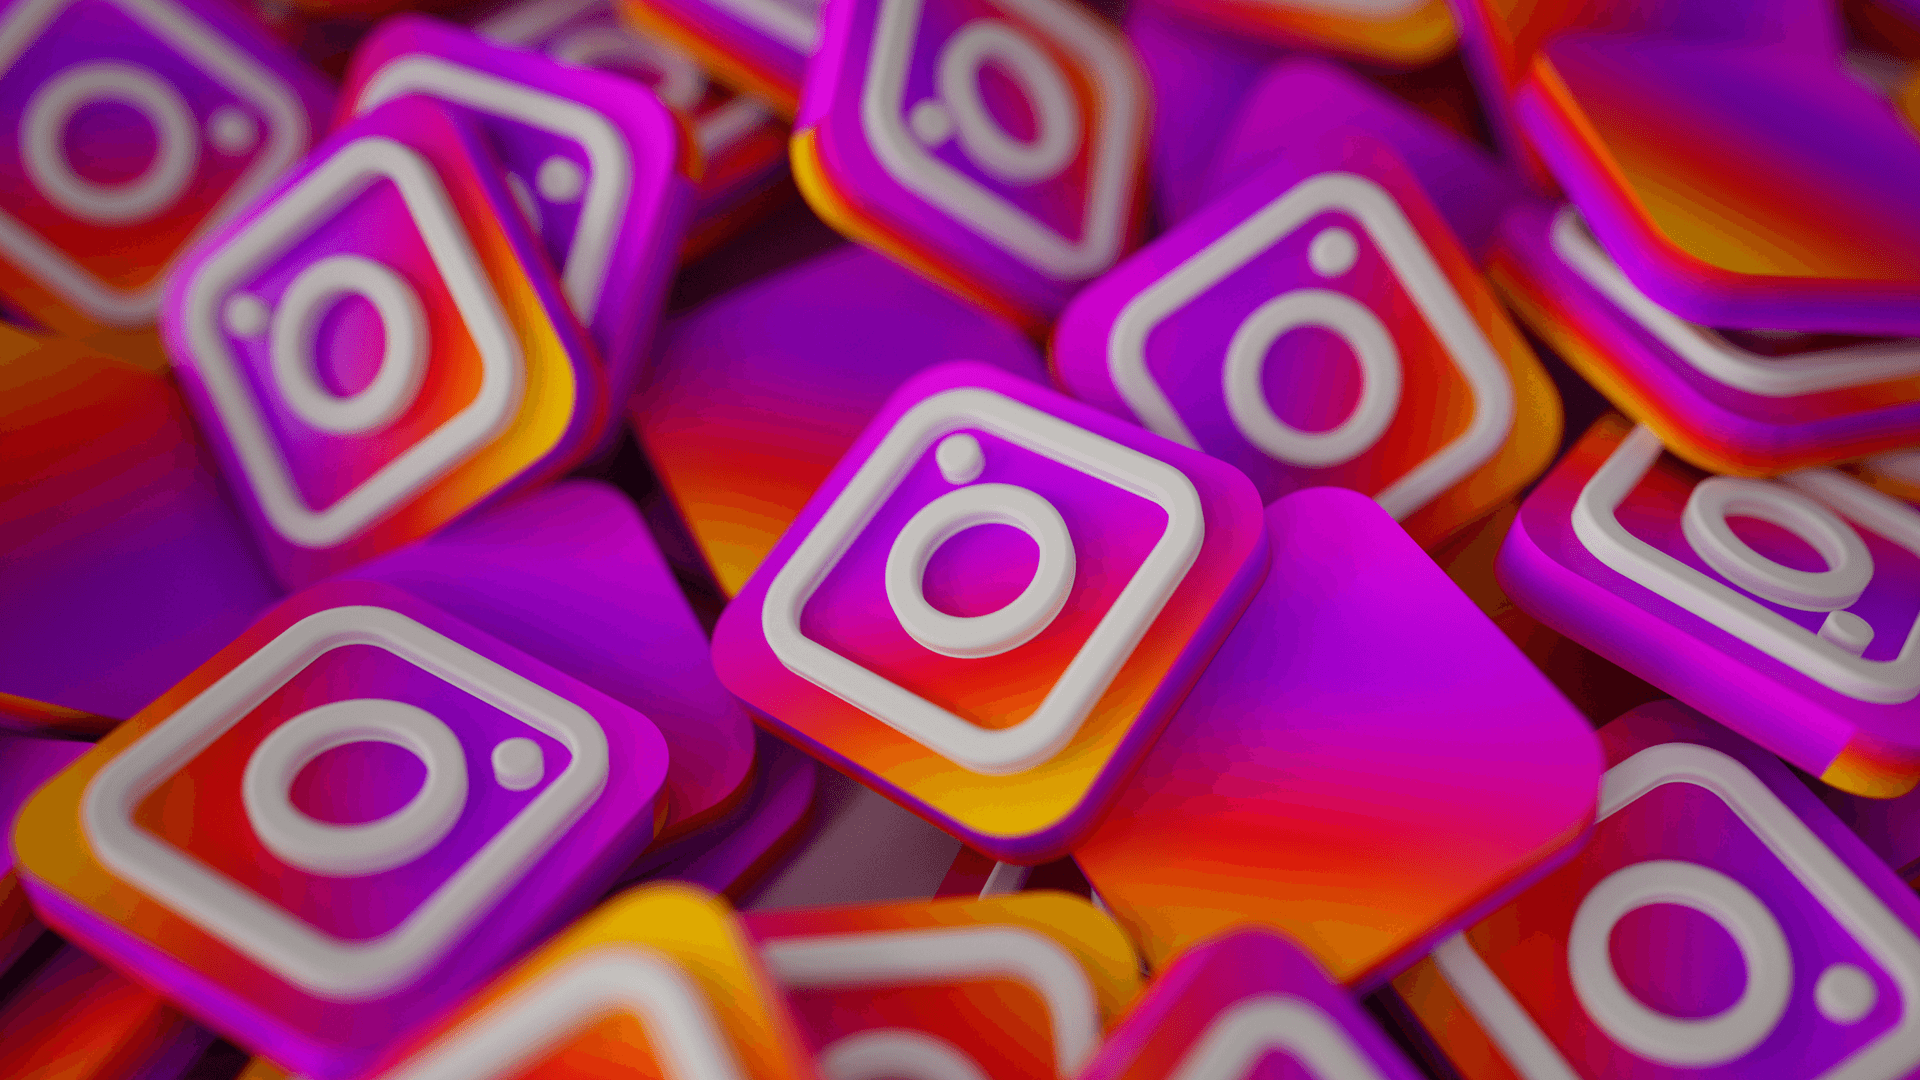 1920x1080 Top 20 Motivational Instagram Accounts to Follow in 2018